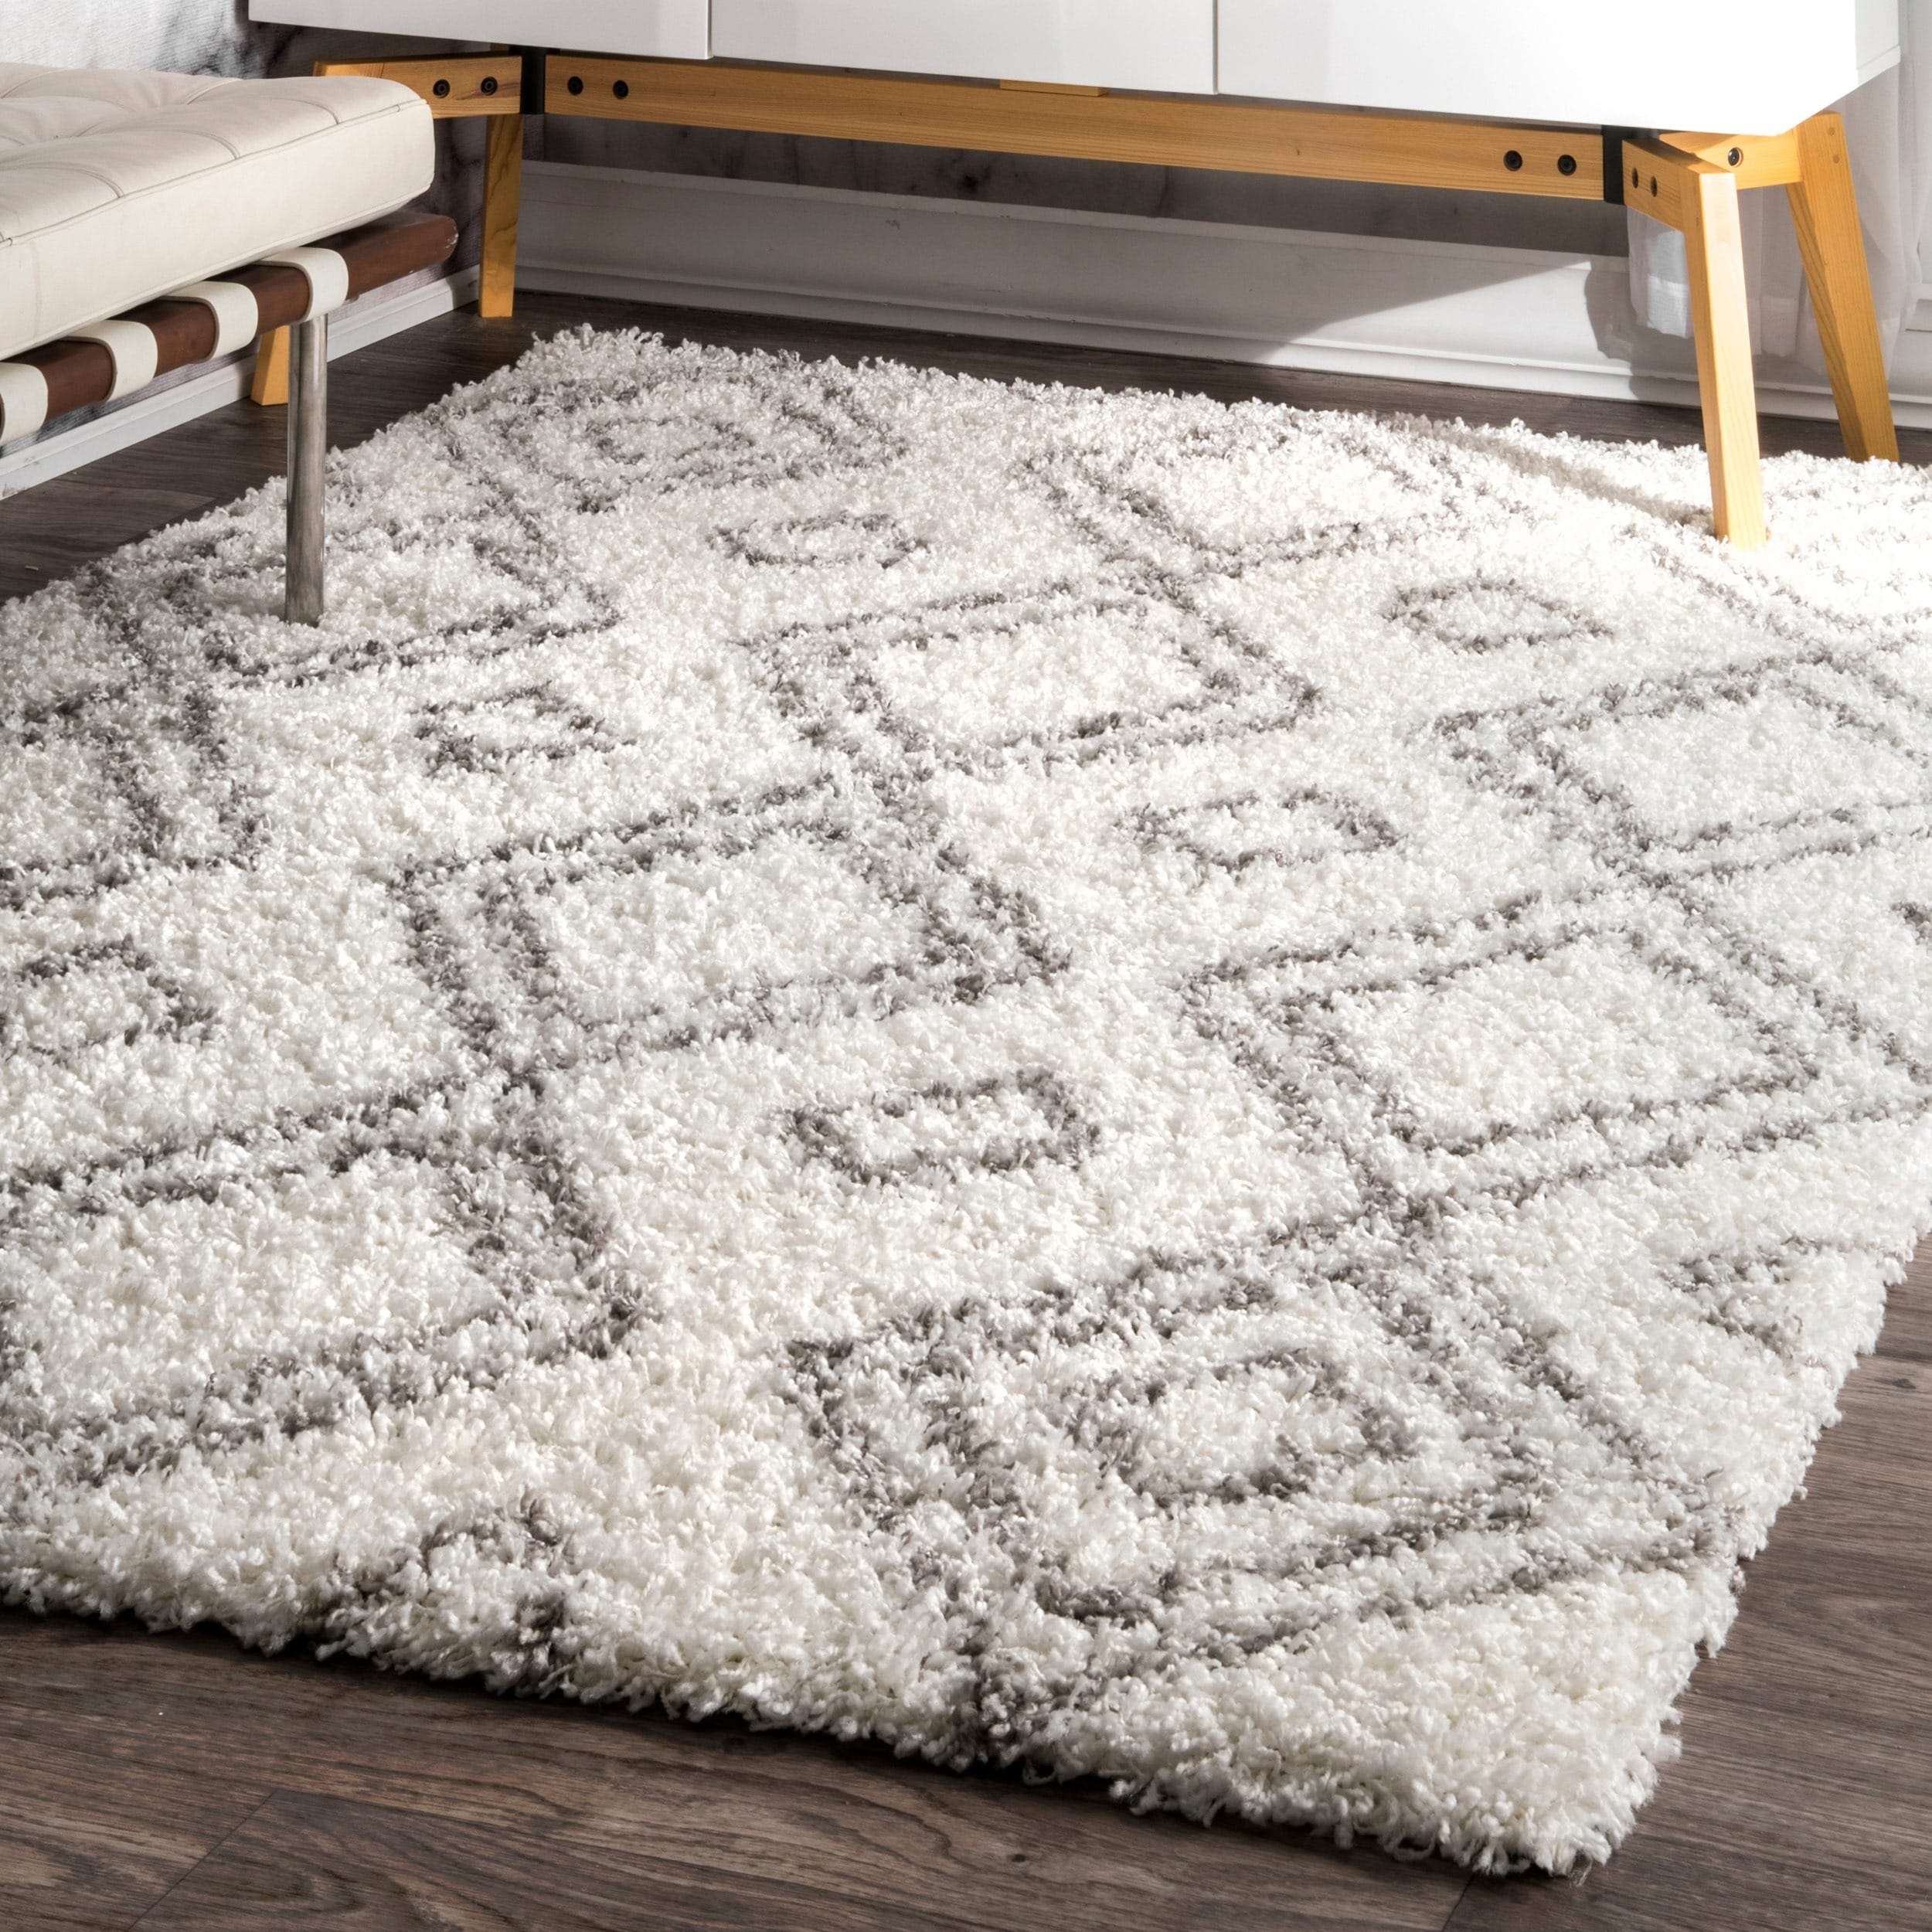 Classy Marrakesh Shag Rug | Endearing Shaggy Rugs for Bedroom